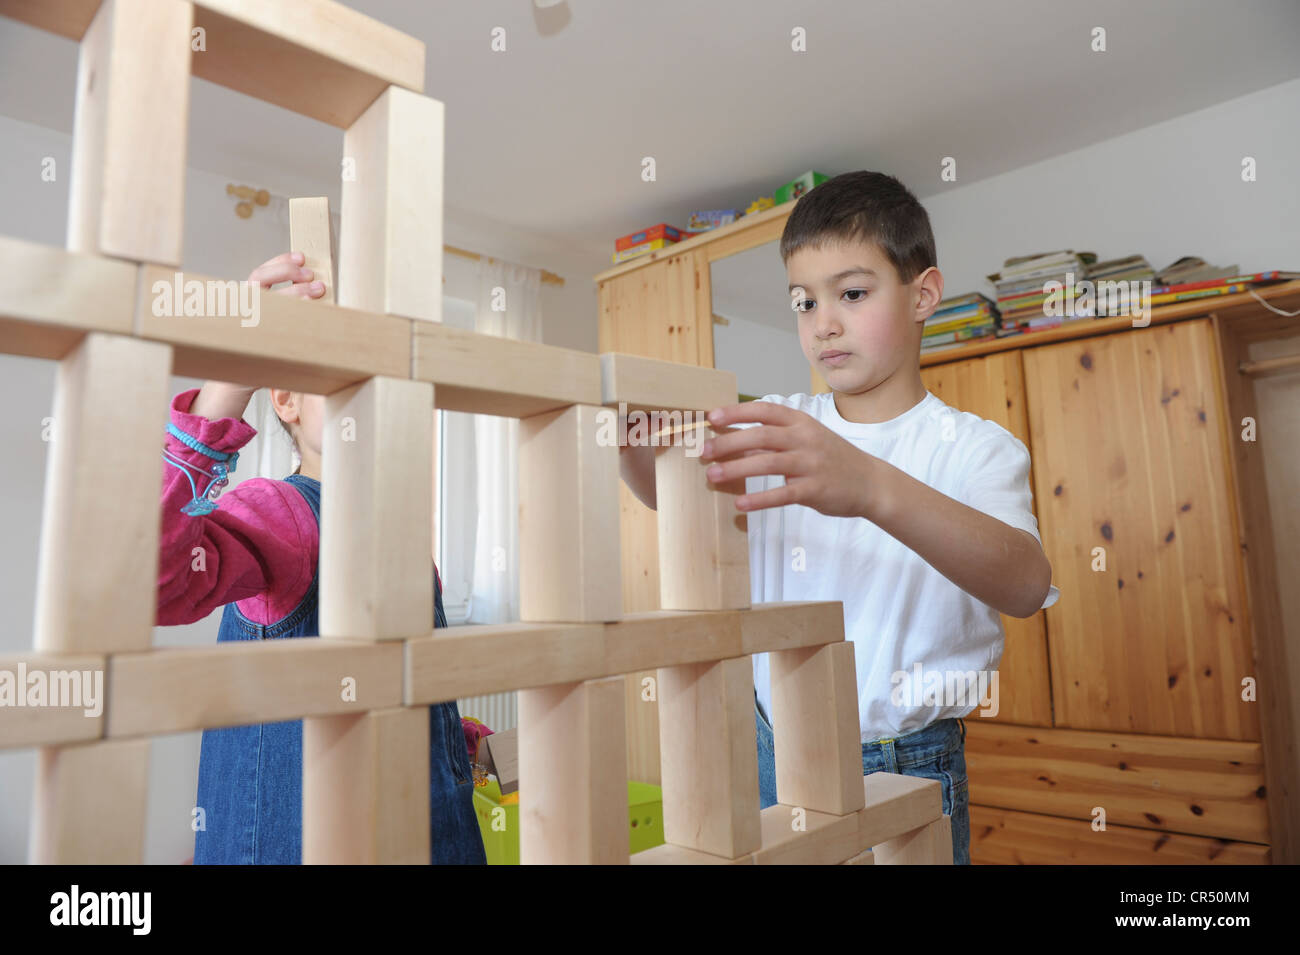 Girl and boy, 6 and 7 years, playing with toy blocks - Stock Image